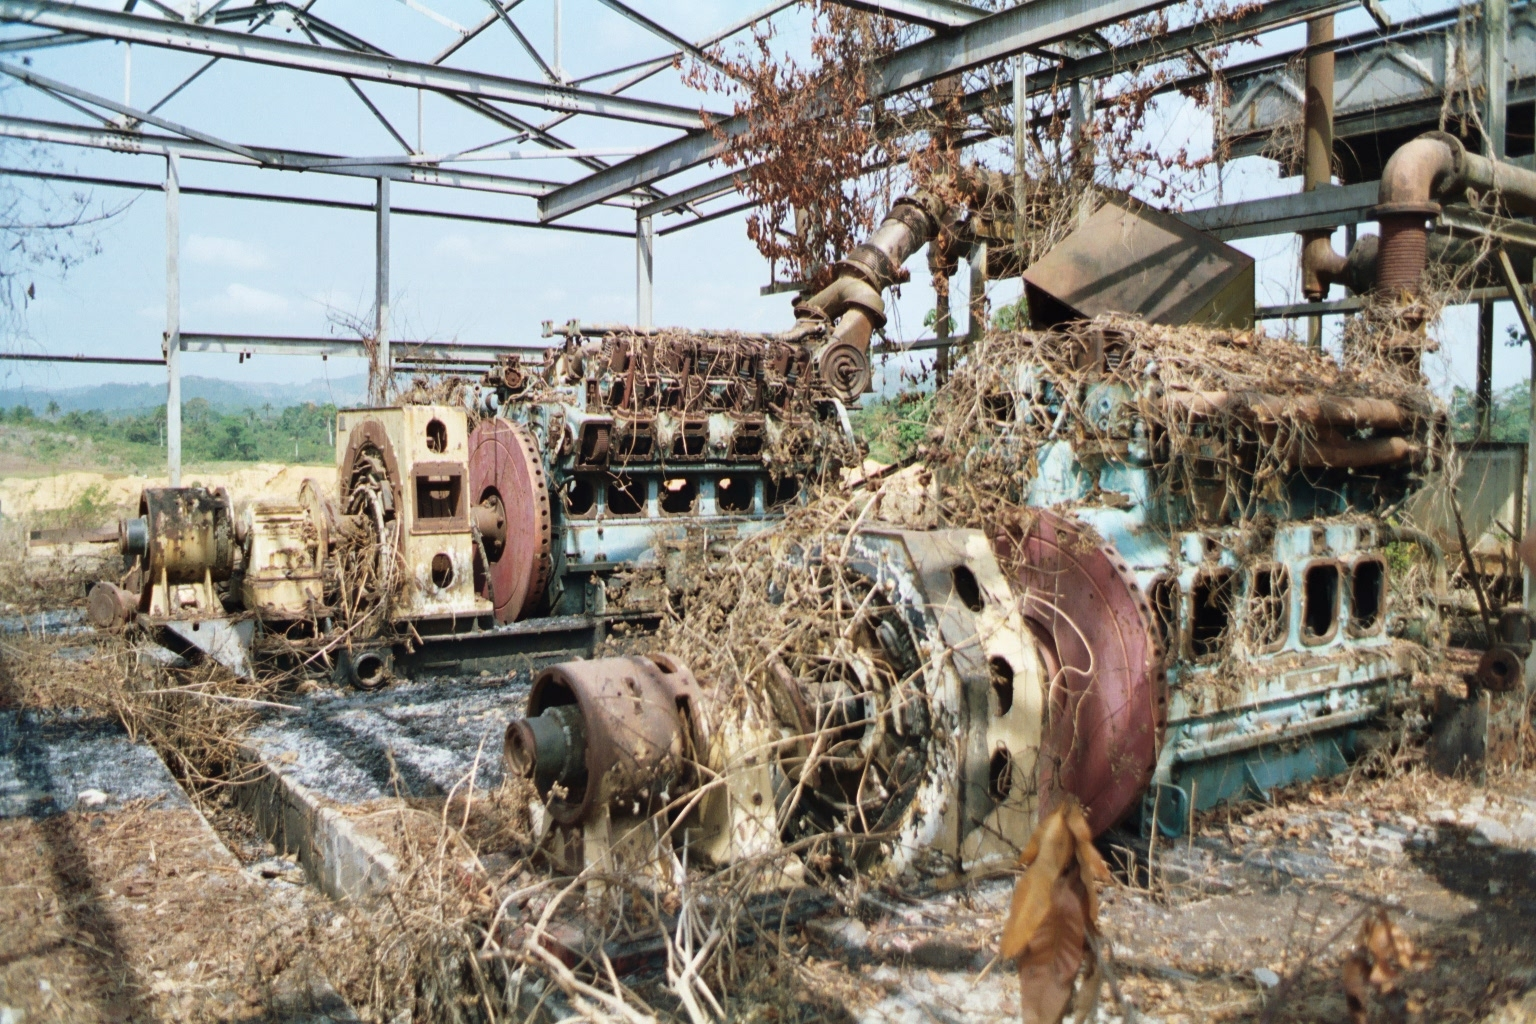 Wrecked machinery